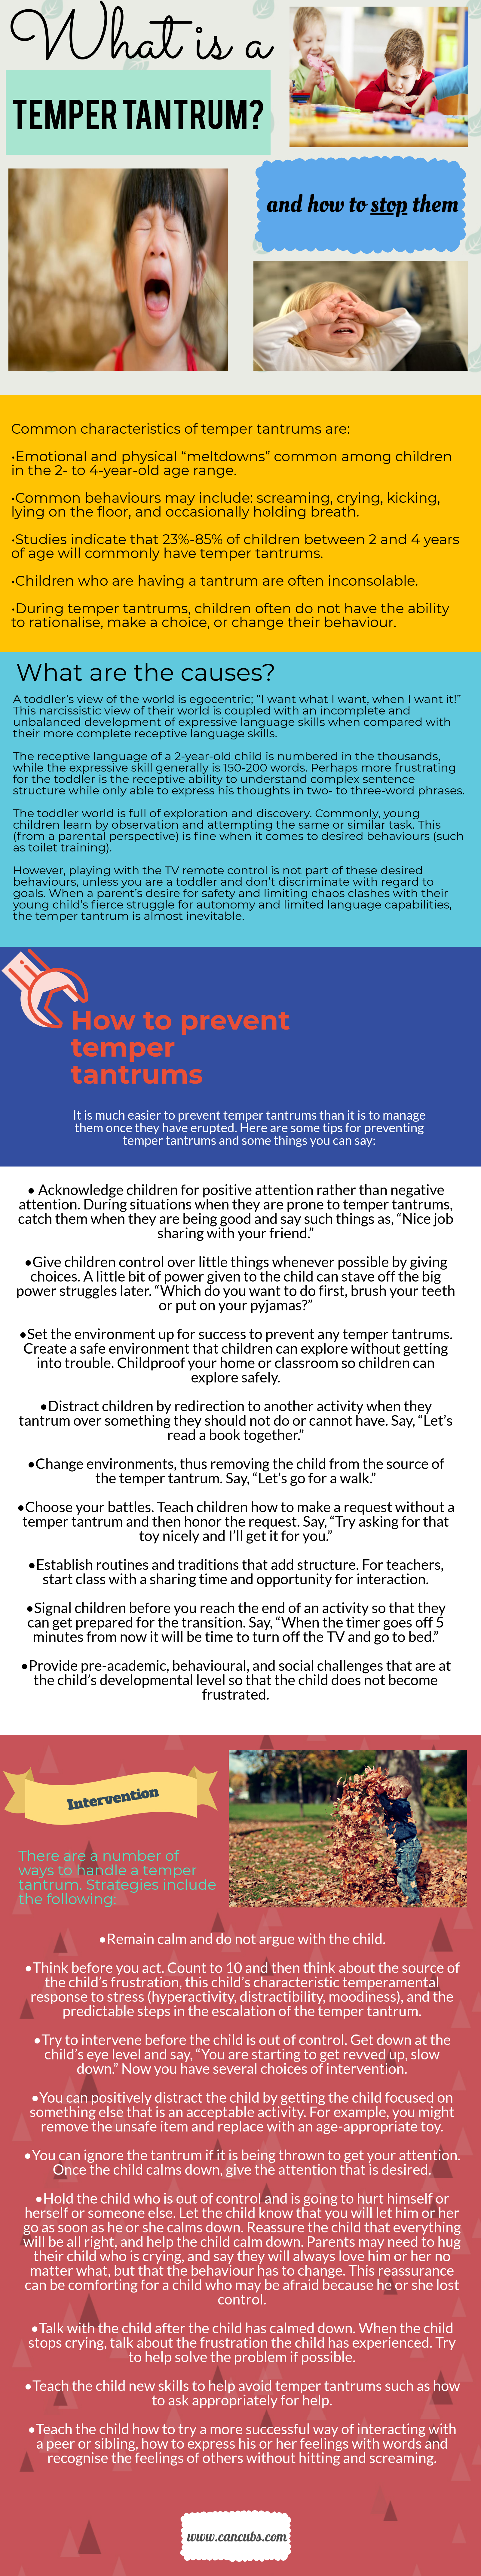 how to deal with temper tantrums